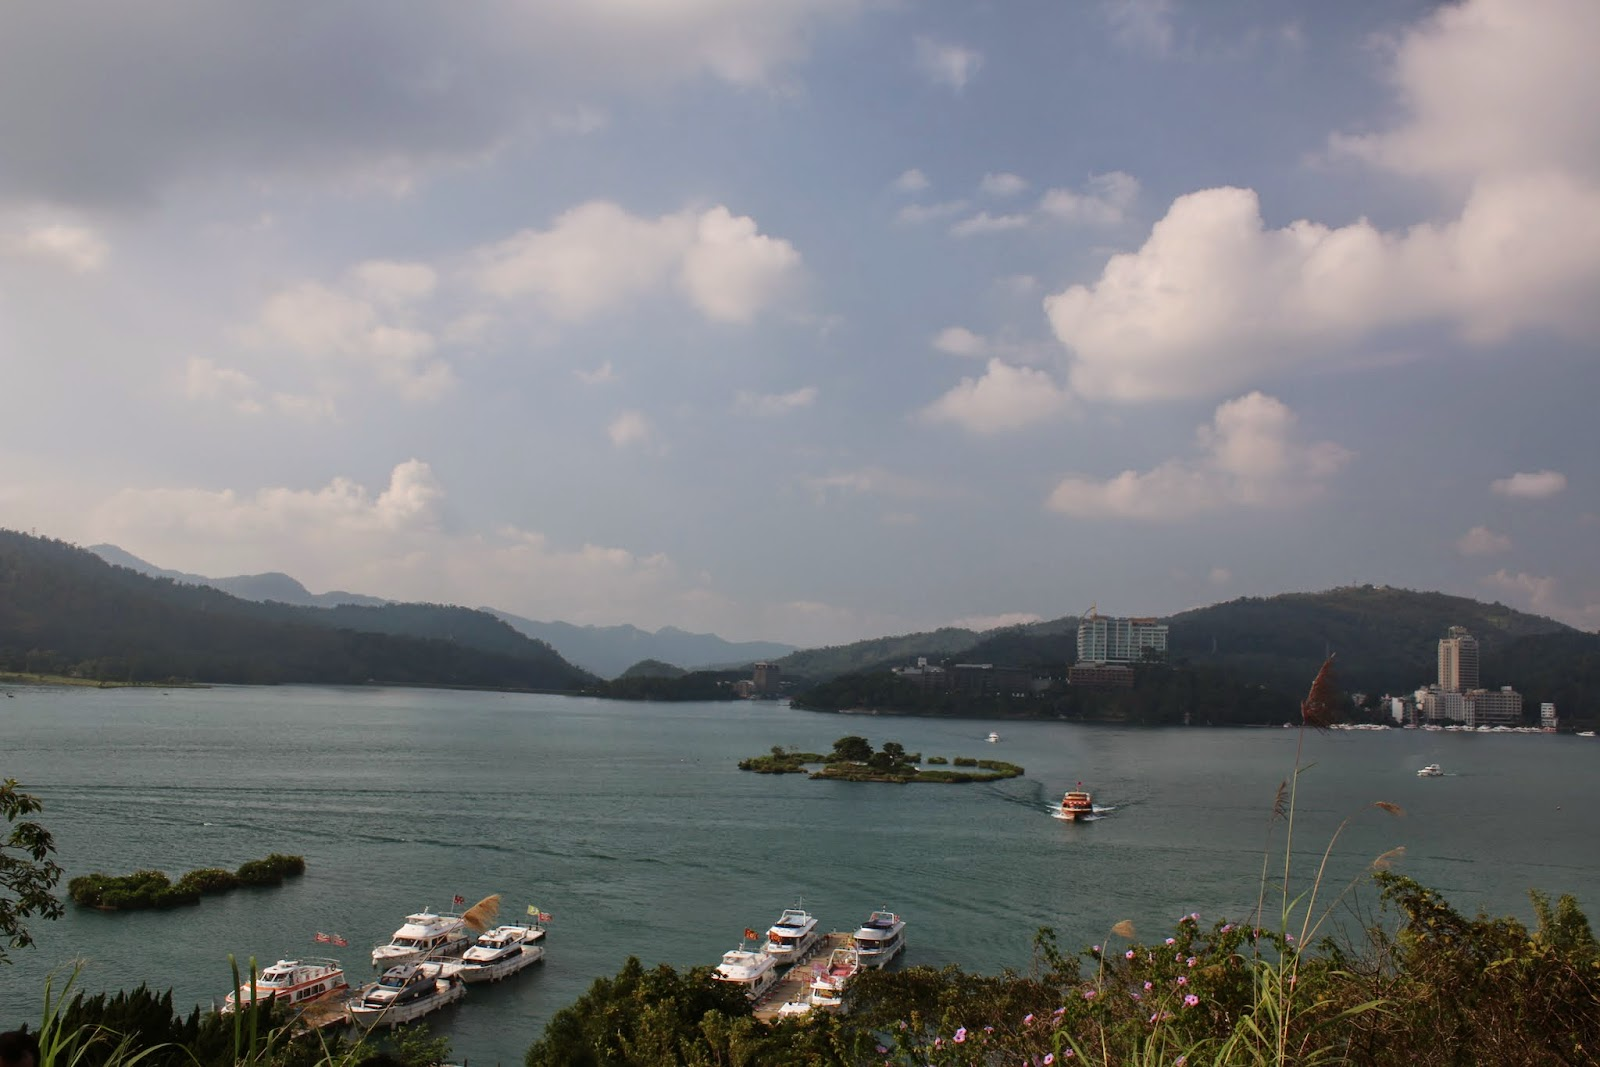 Beautiful scenic view of Sun Moon Lake from the top hill of Syuanguang Temple in Taiwan